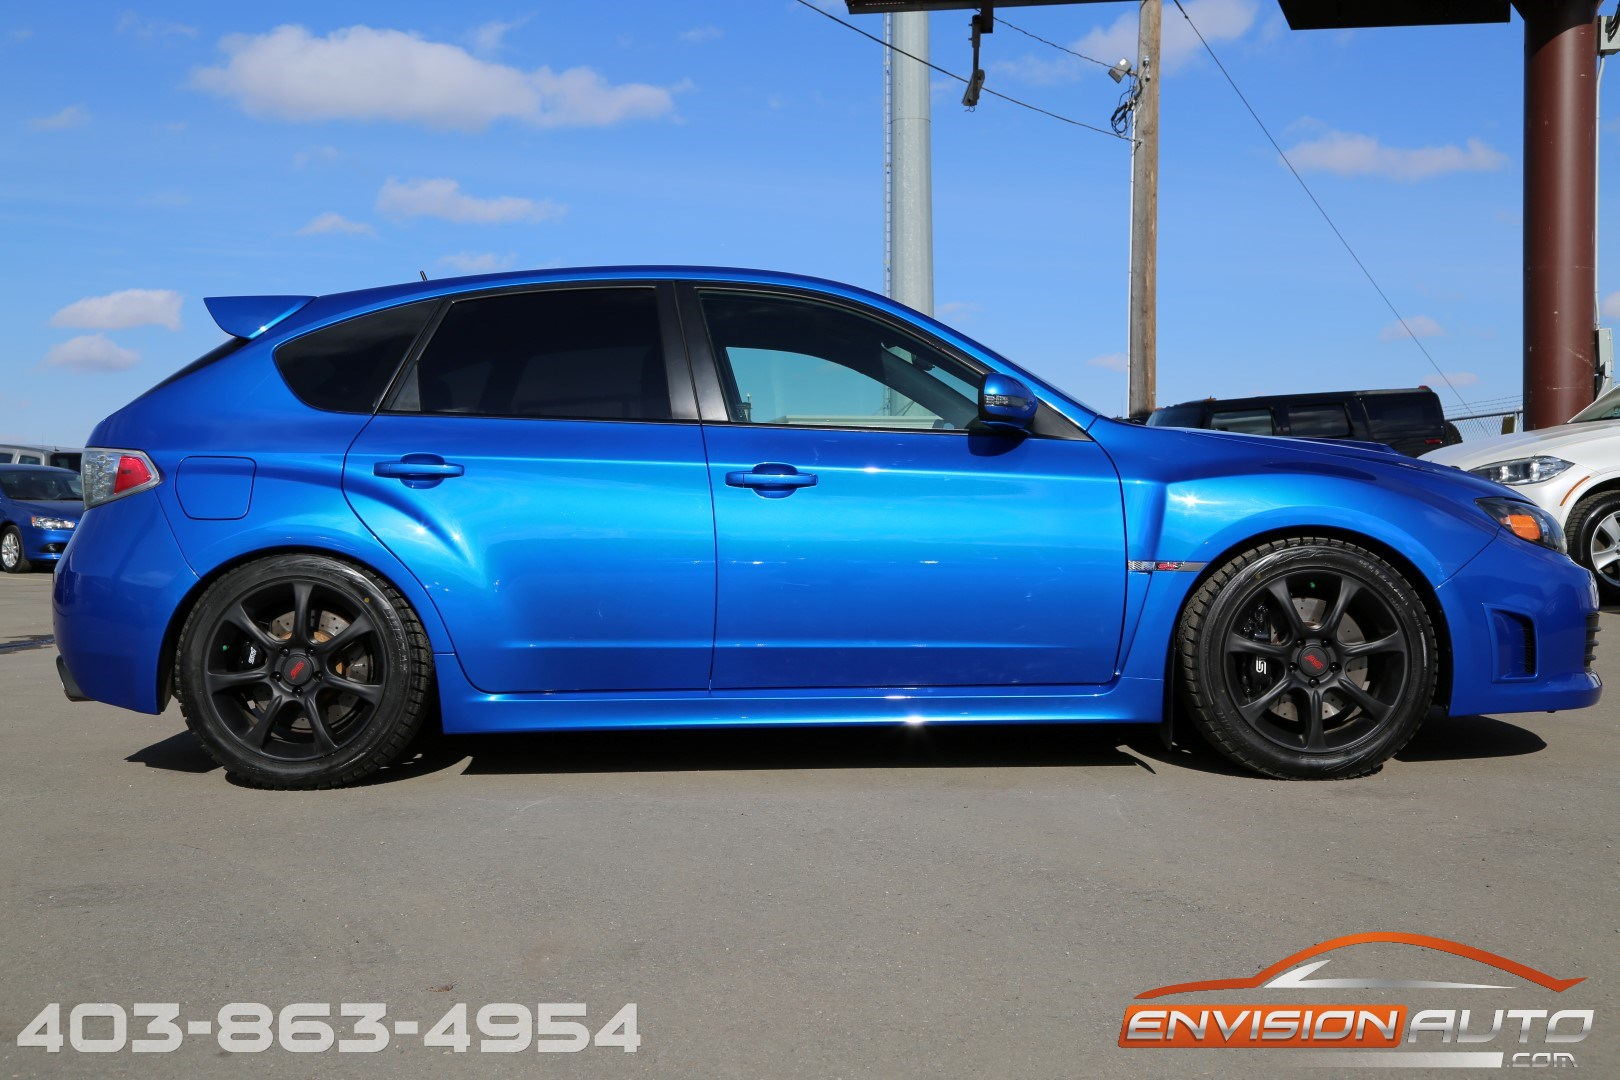 Subaru Wrx Sti 2013 For Sale >> 2010 Subaru Impreza WRX STI – CUSTOM BUILT ENGINE – ONLY 90KMS! - Envision Auto